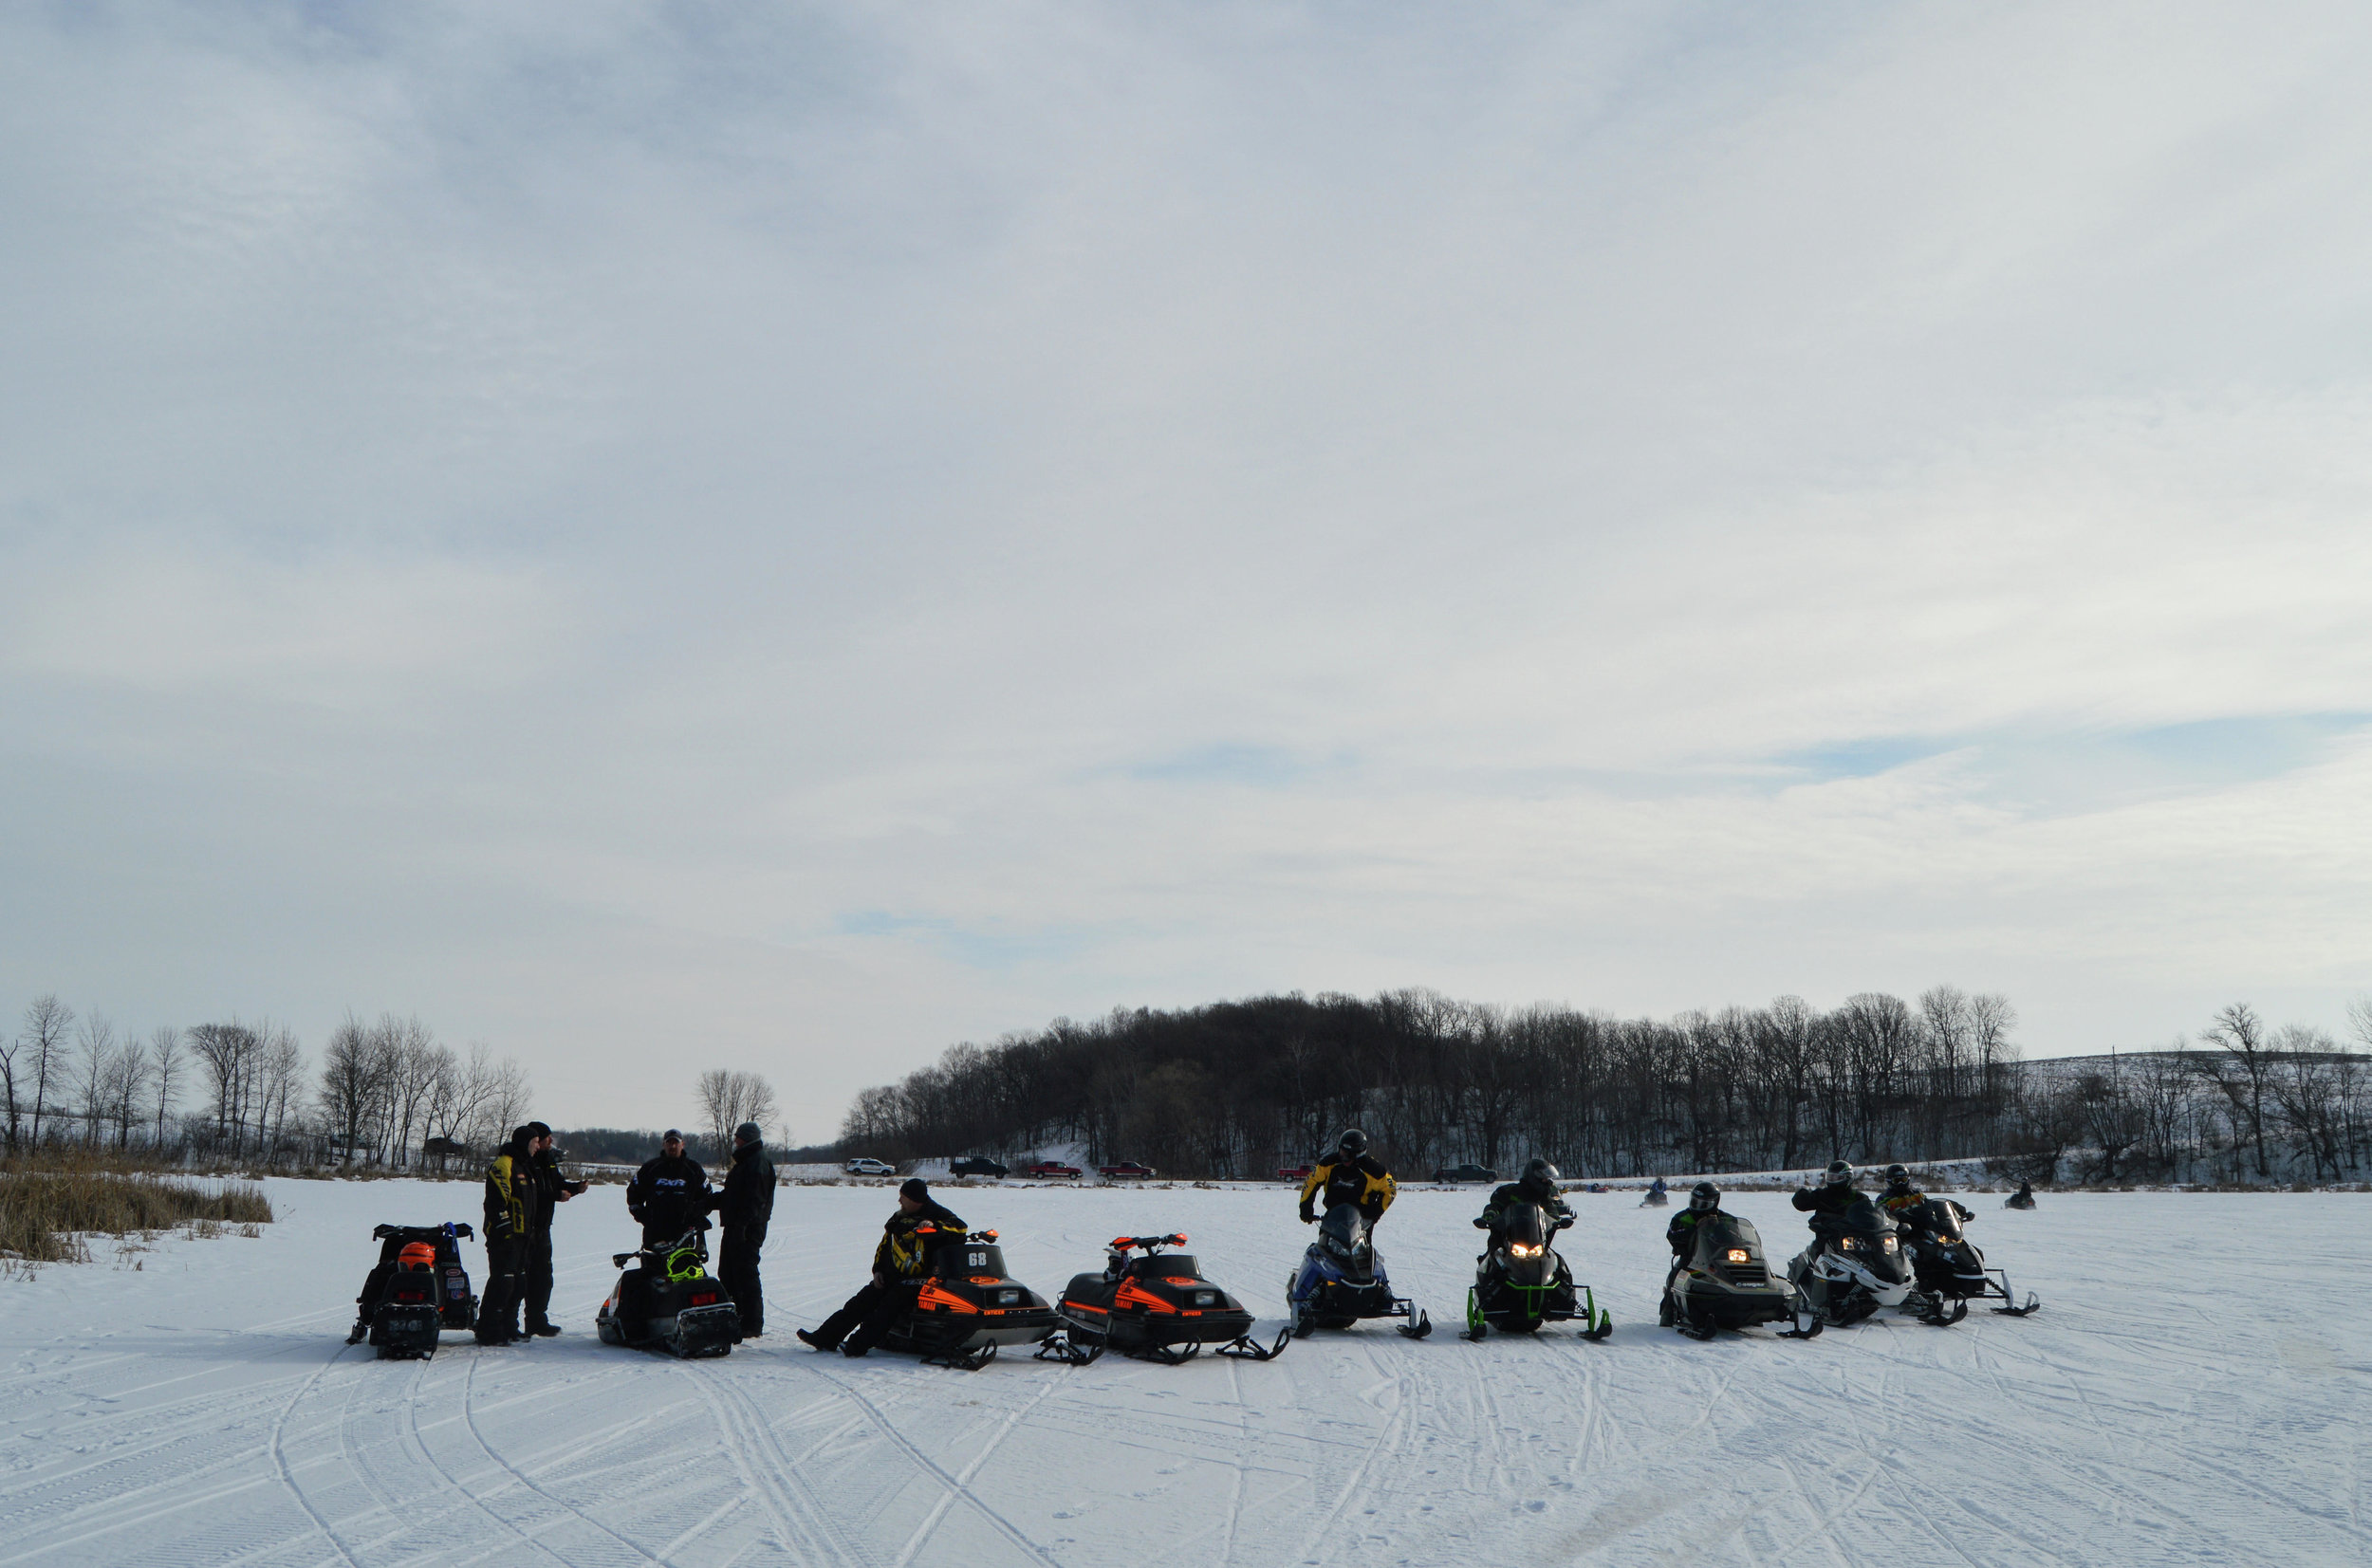 Lined up and ready to ride, the snowmobilers waited their turn to ride up Nylander Hill during the 2017 Old timer's Run. (Tribune file photo)